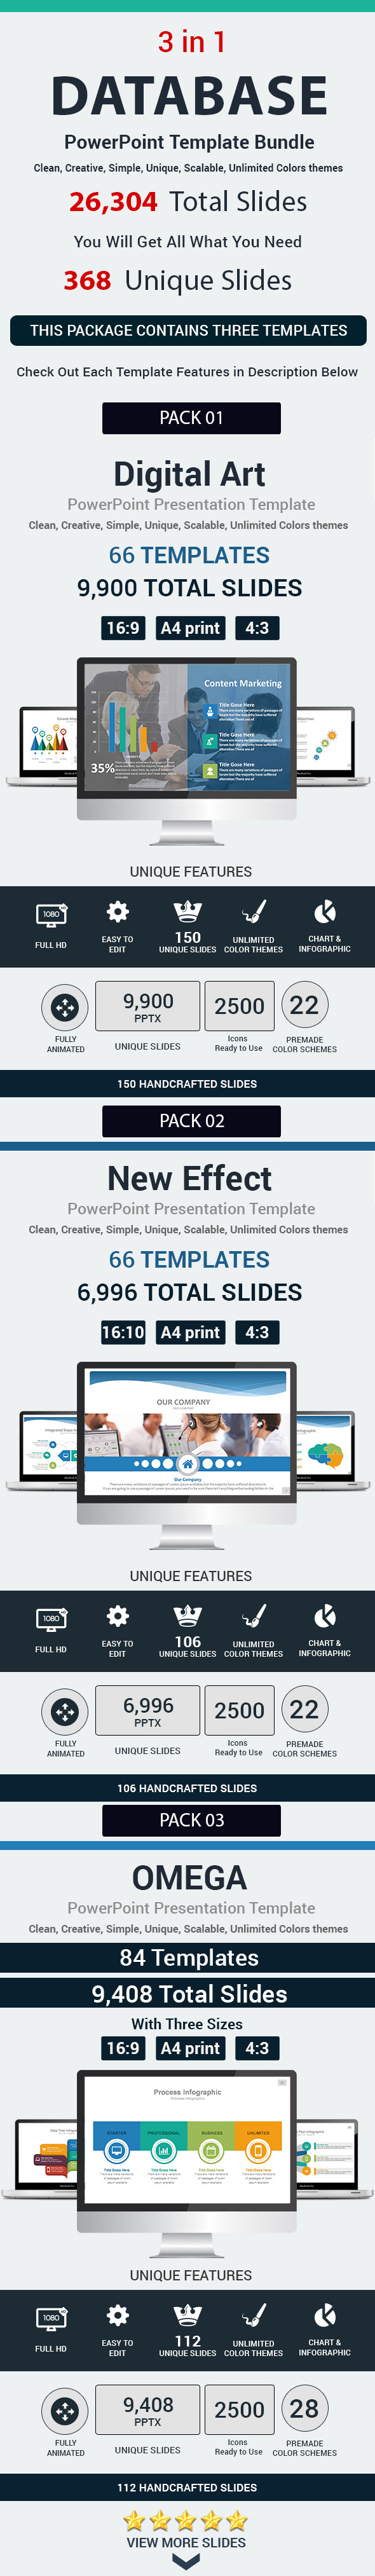 Database 3 in 1 PowerPoint Template Bundle